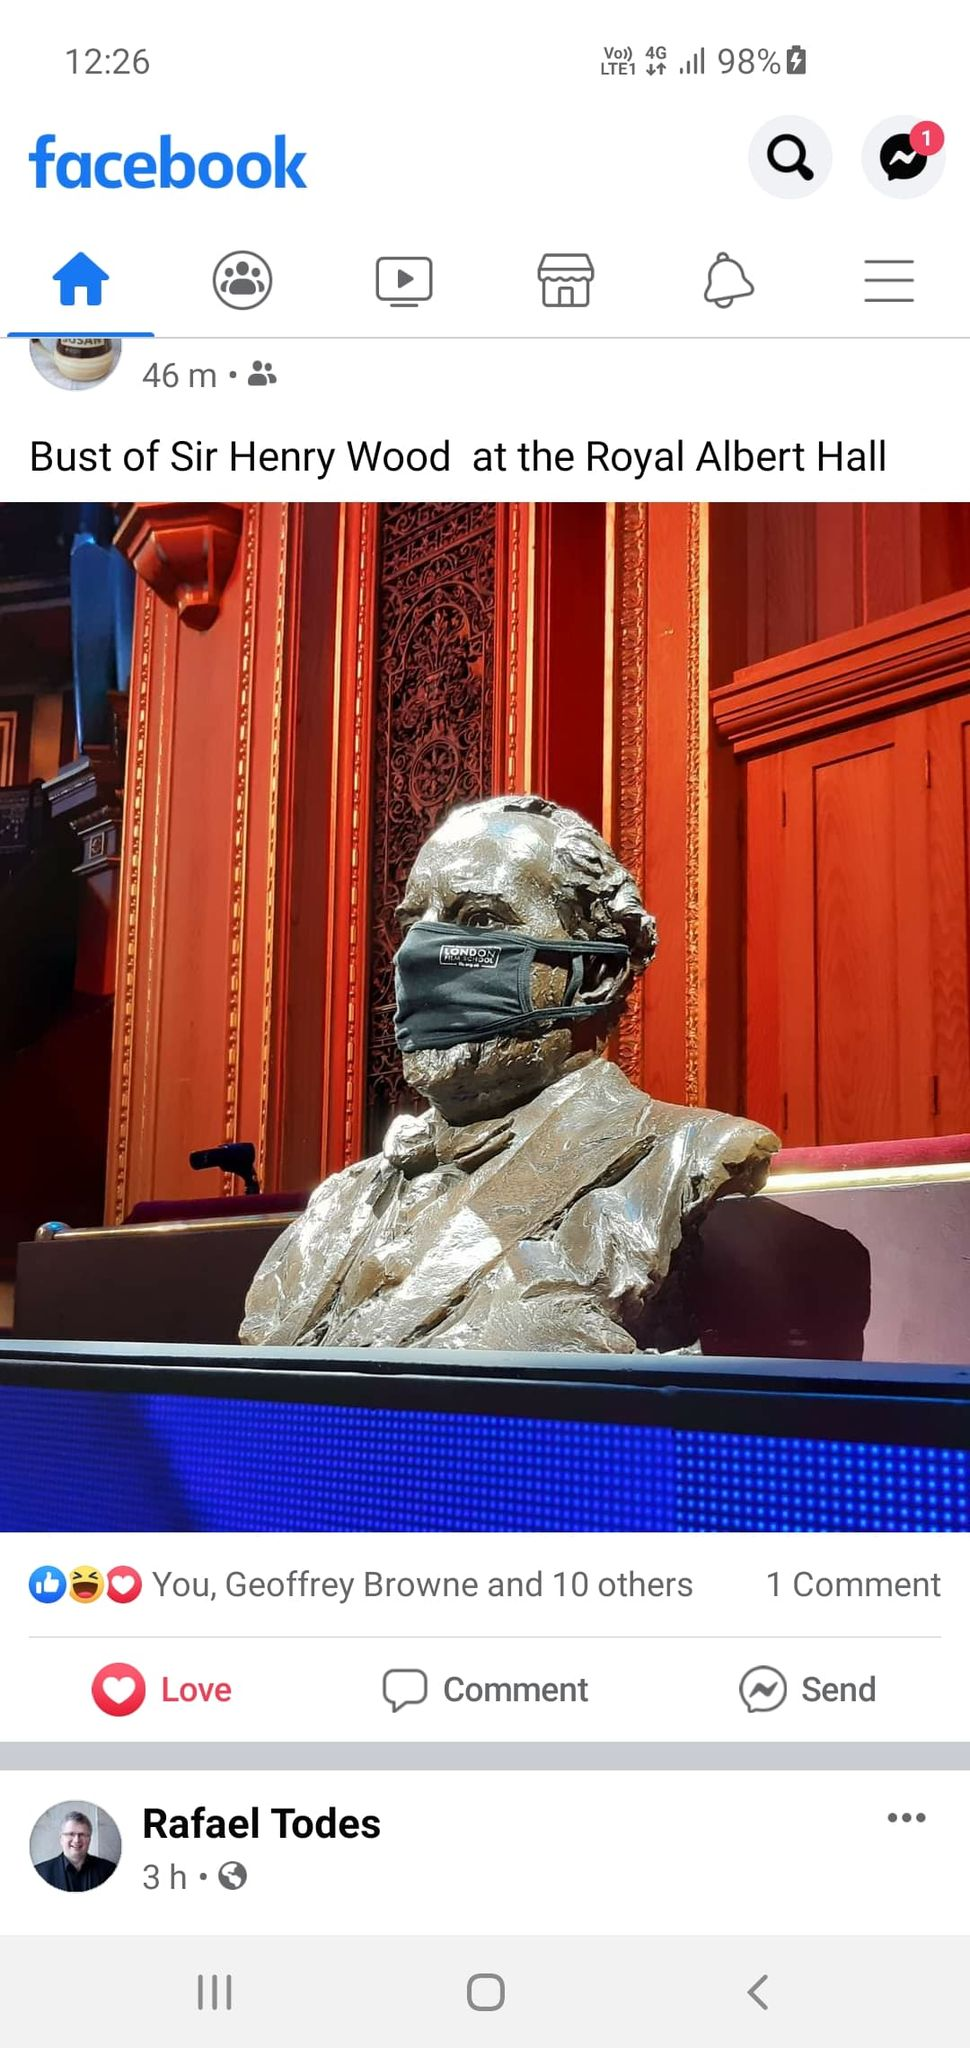 Now the BBC has gagged Sir Henry Wood